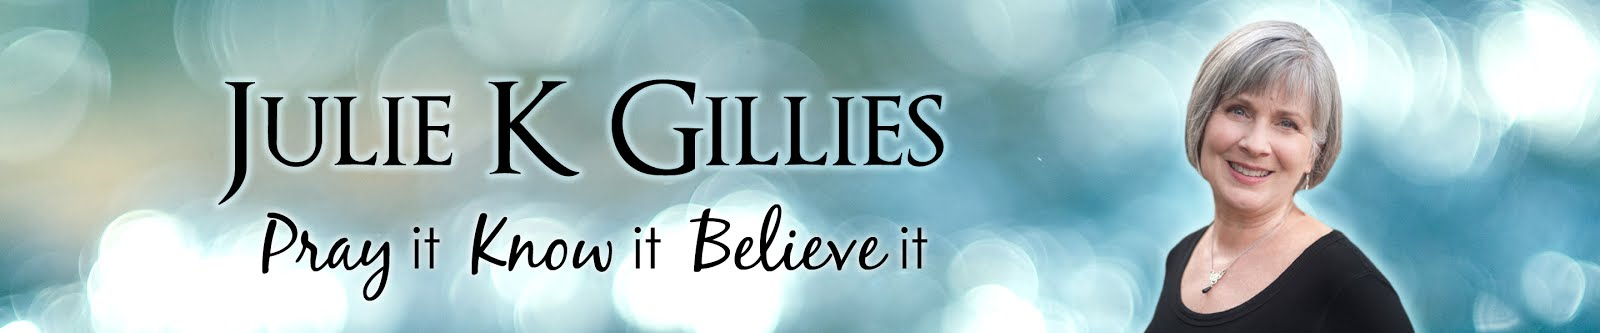 Julie Gillies - Pray It. Know It. Believe It.